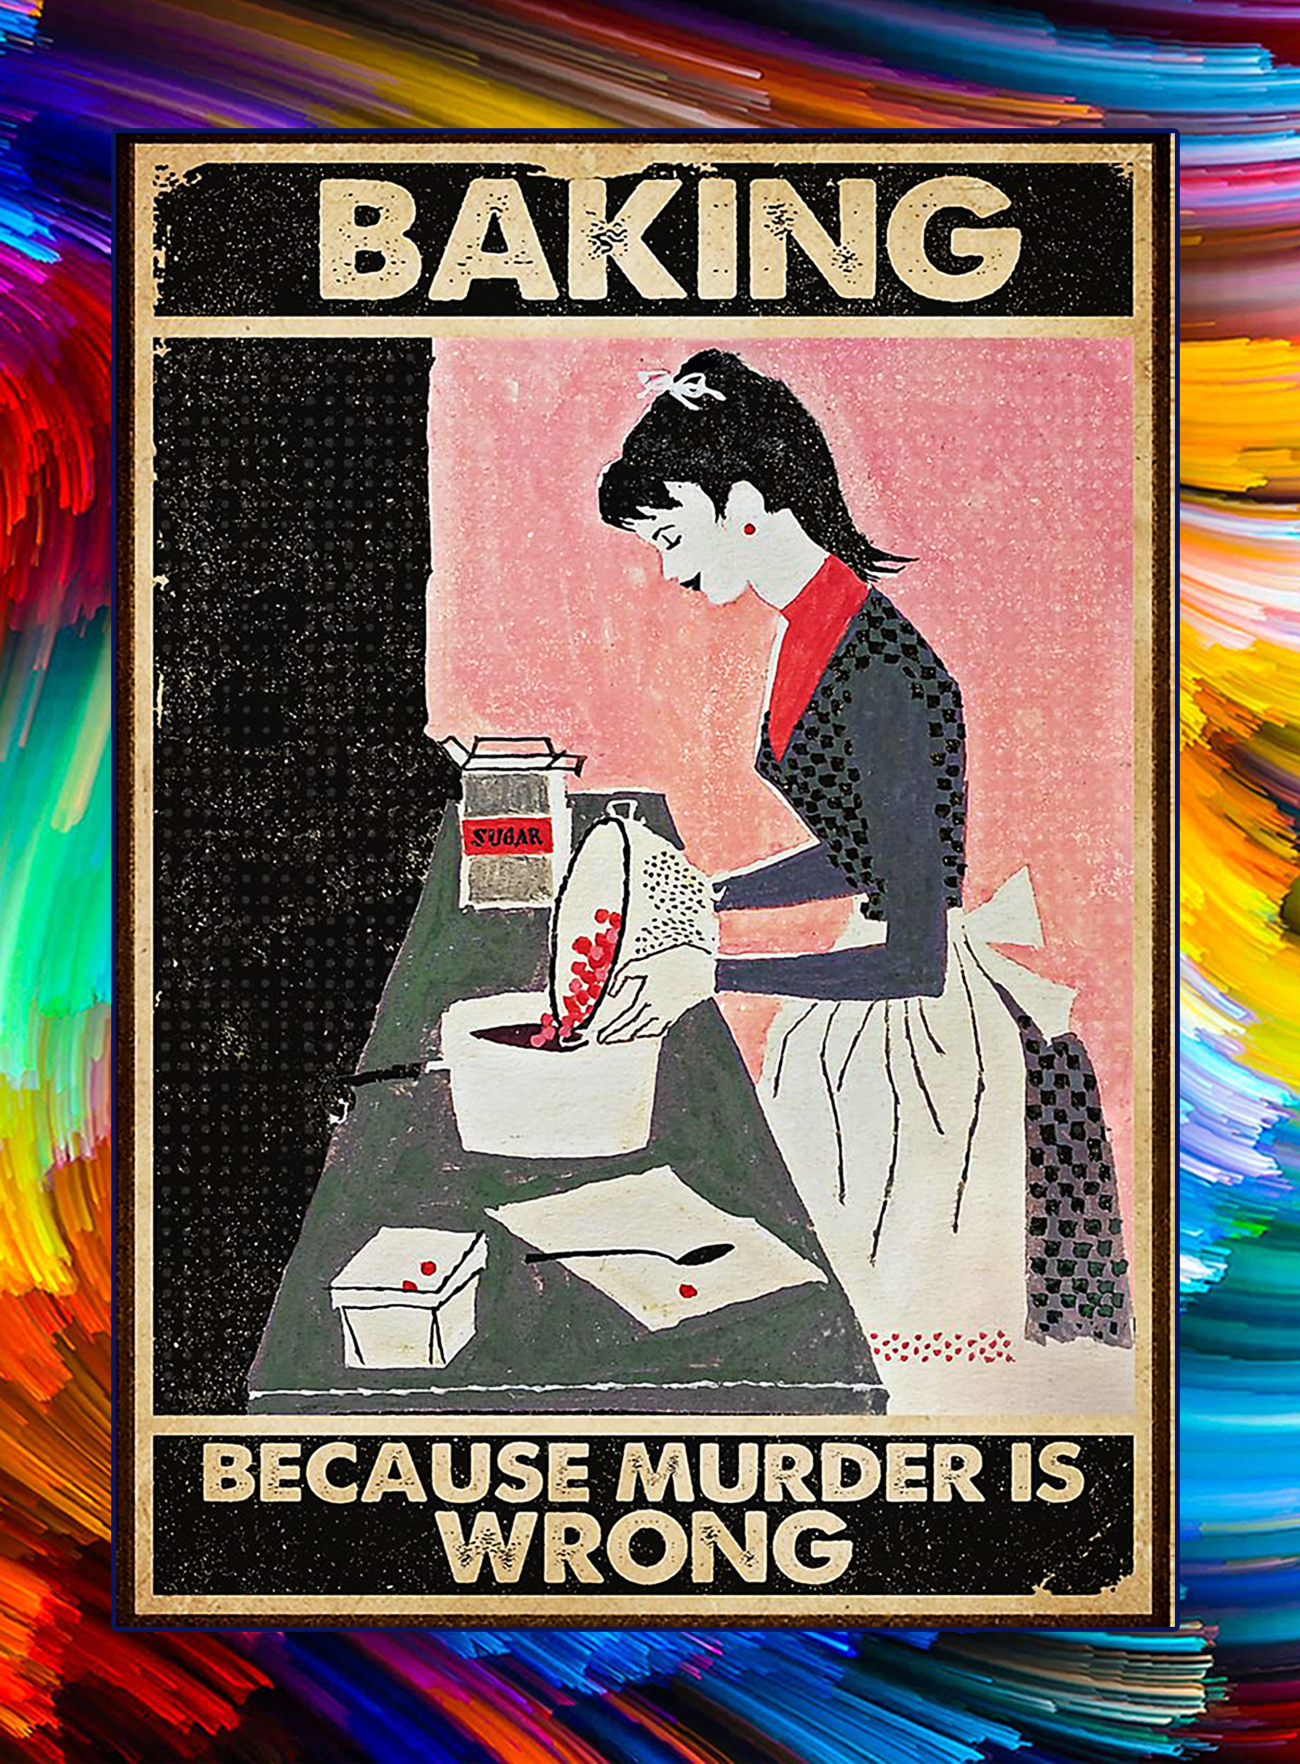 Because murder is wrong baking poster - A1